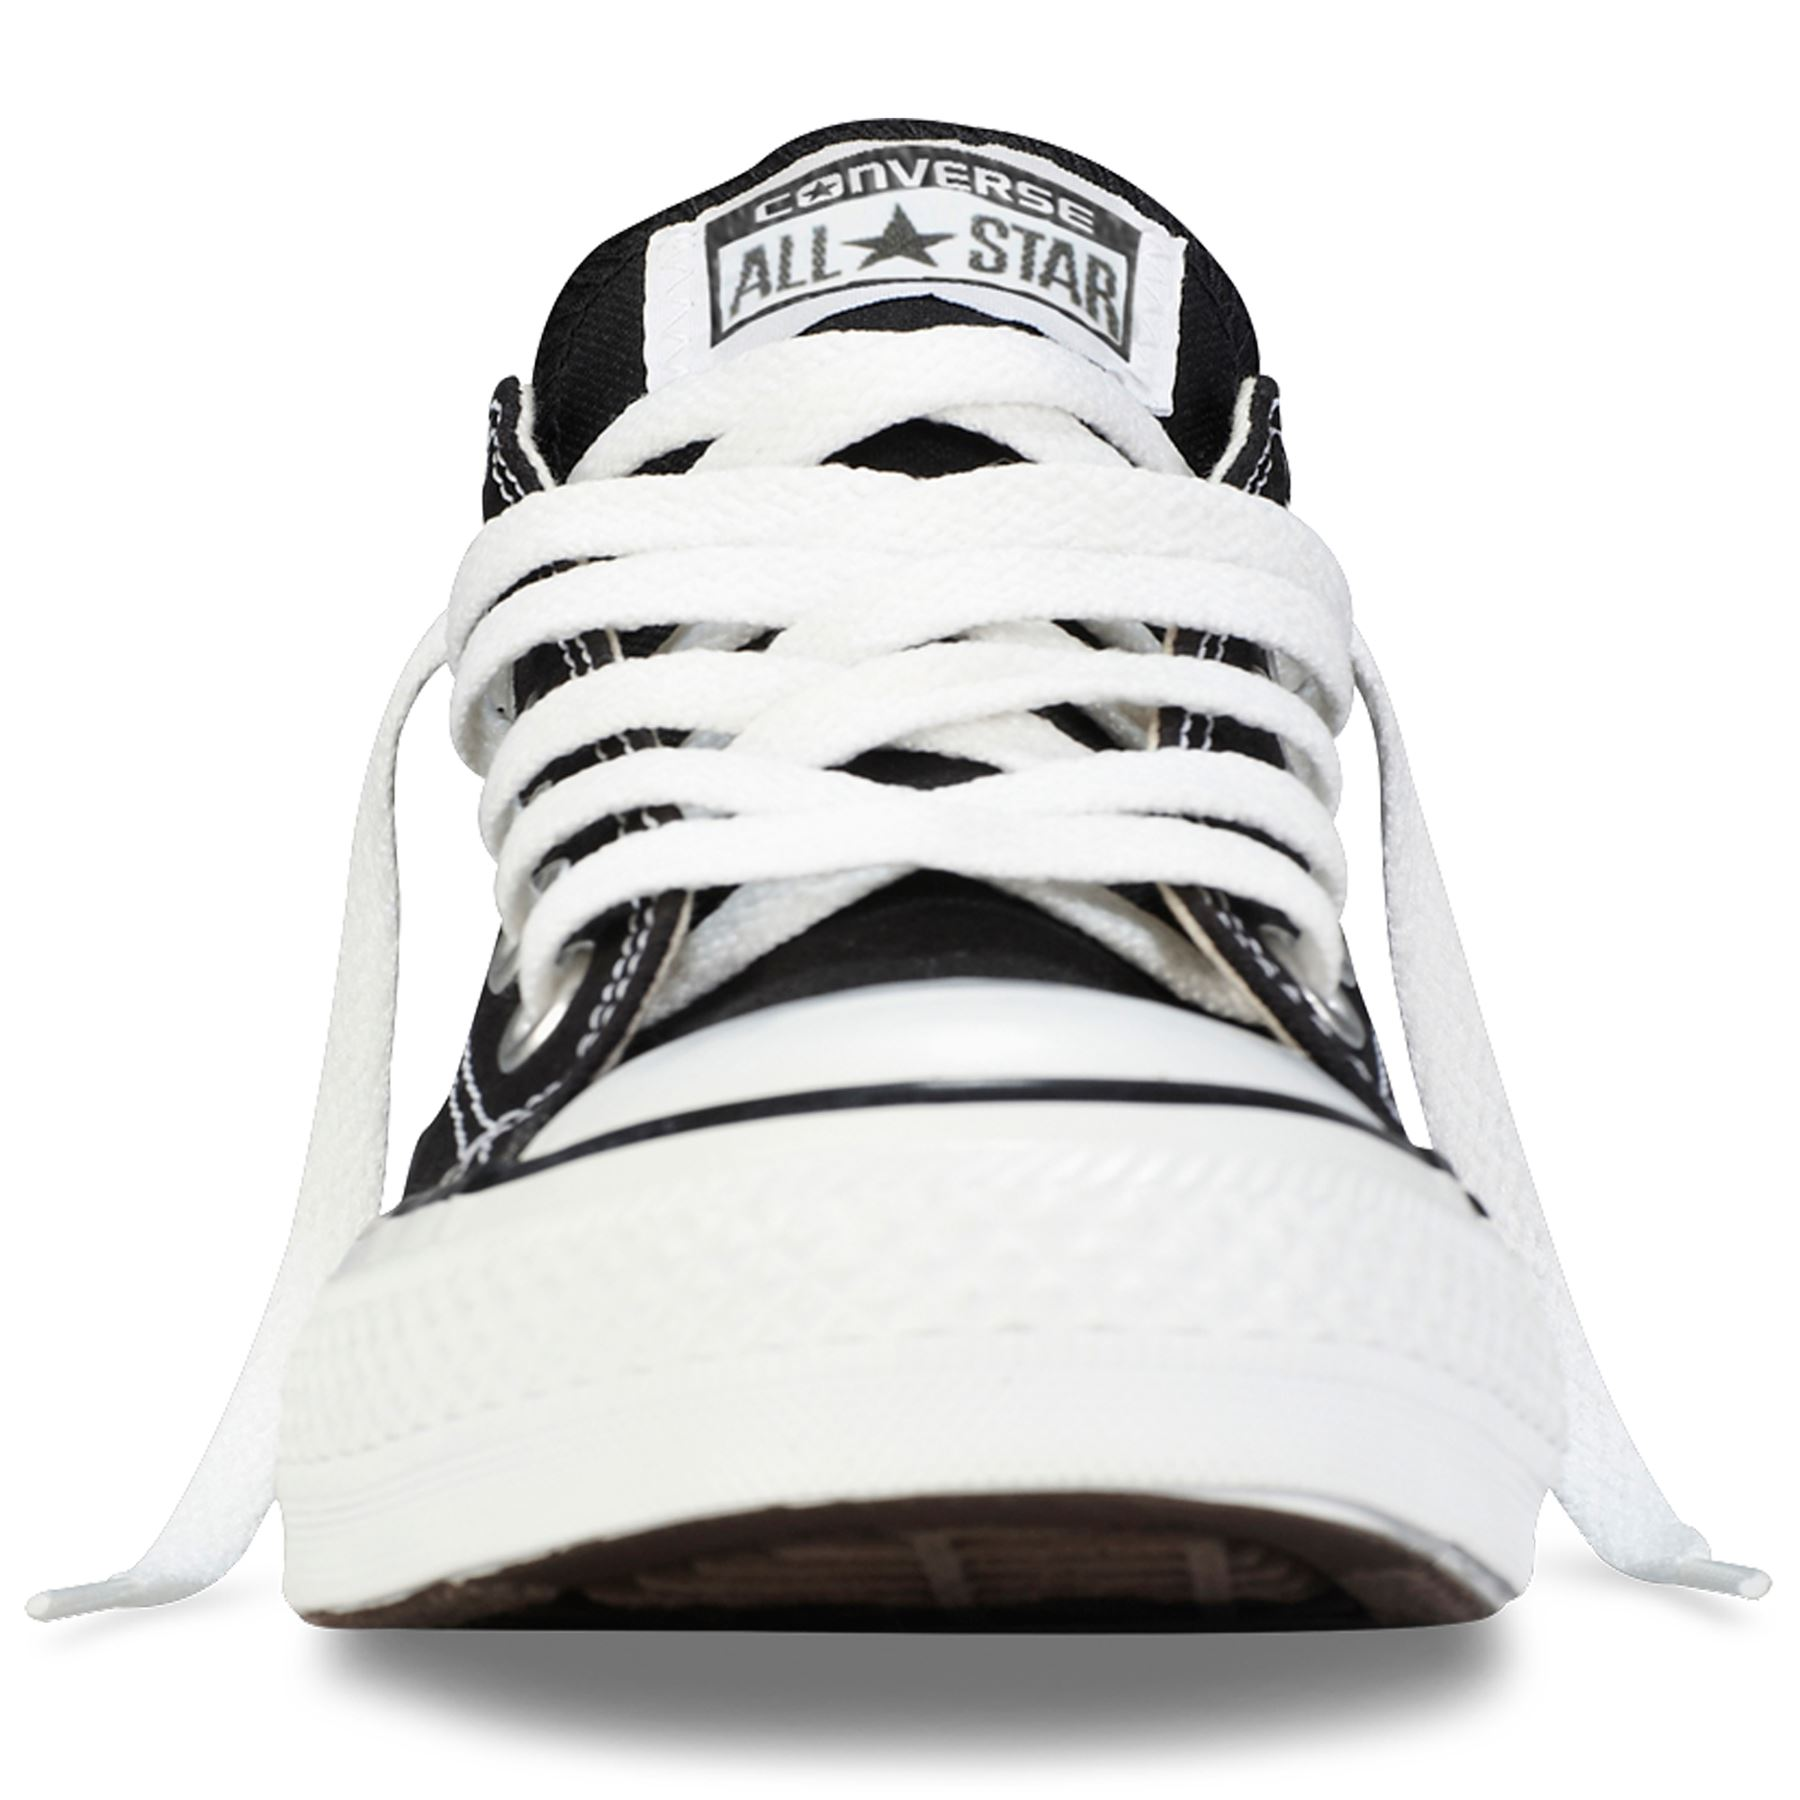 Converse-All-Star-Chuck-Taylor-Mens-Womens-Trainers-Lo-Tops-Pumps-Unisex-Sneaker thumbnail 4